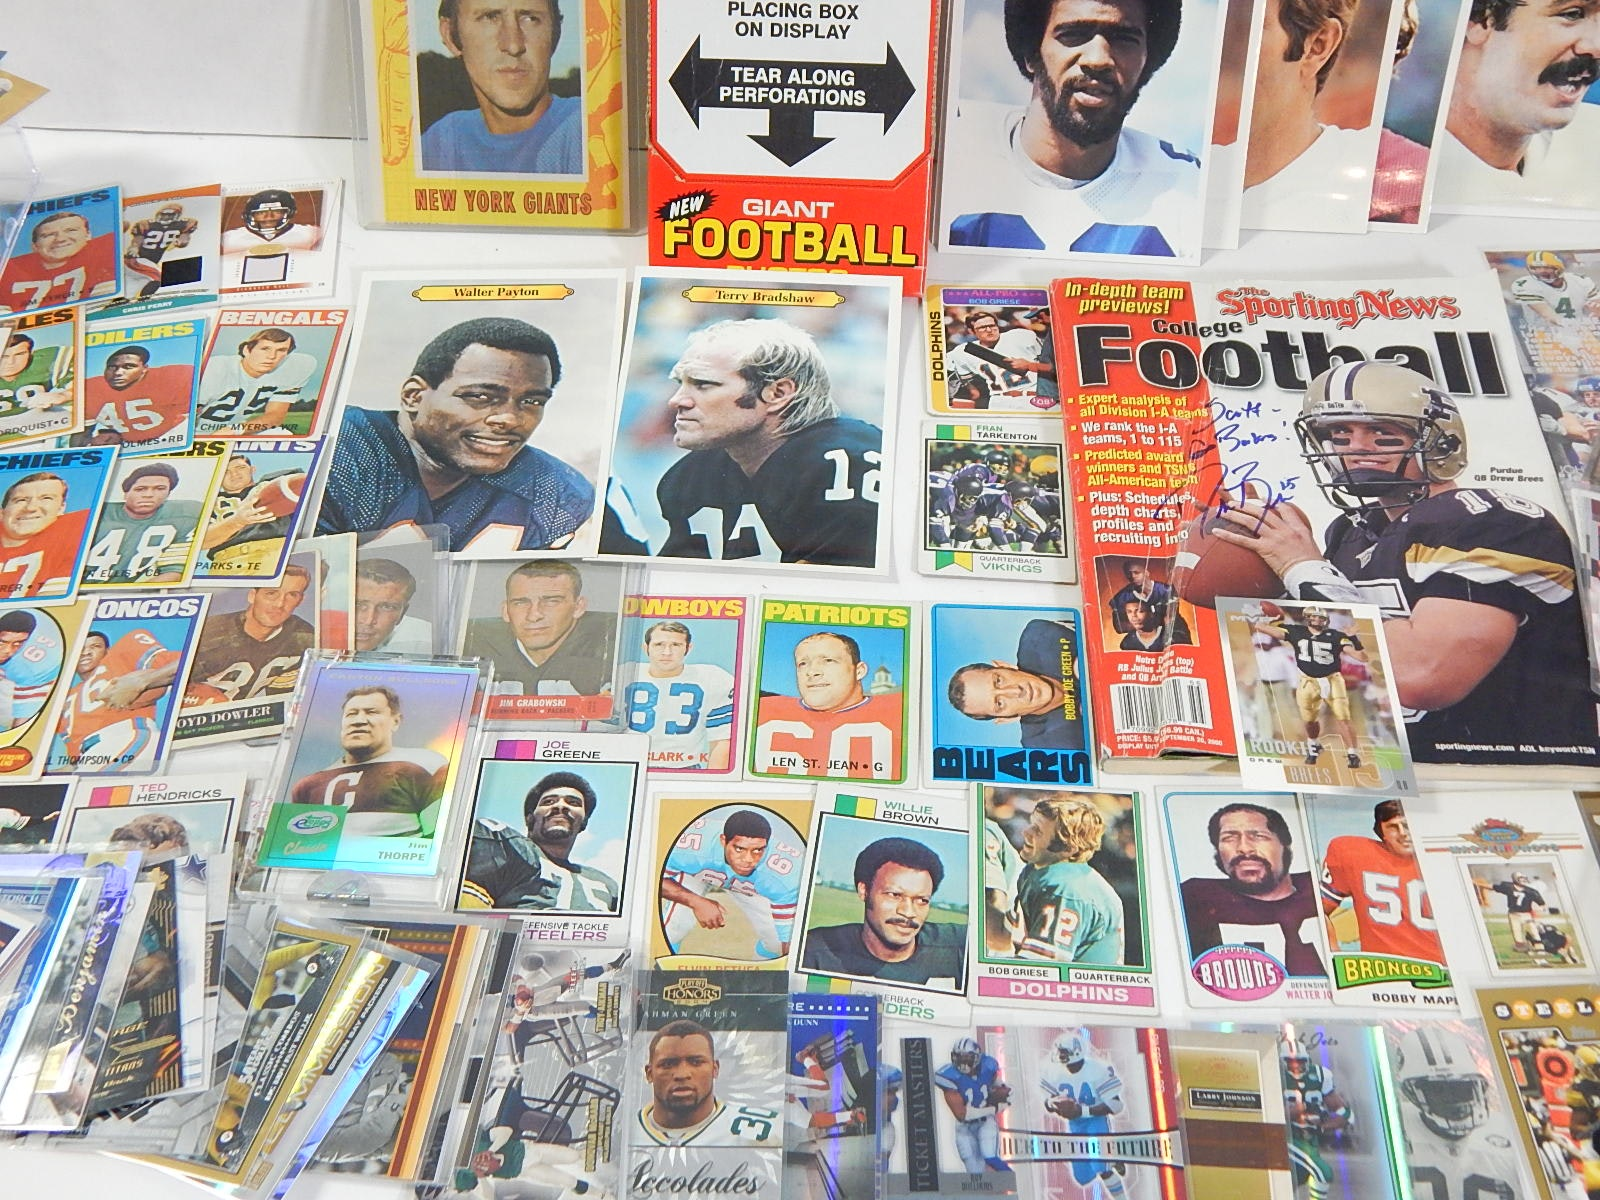 Football Card Collection with Vintage Cards, Photographs, More